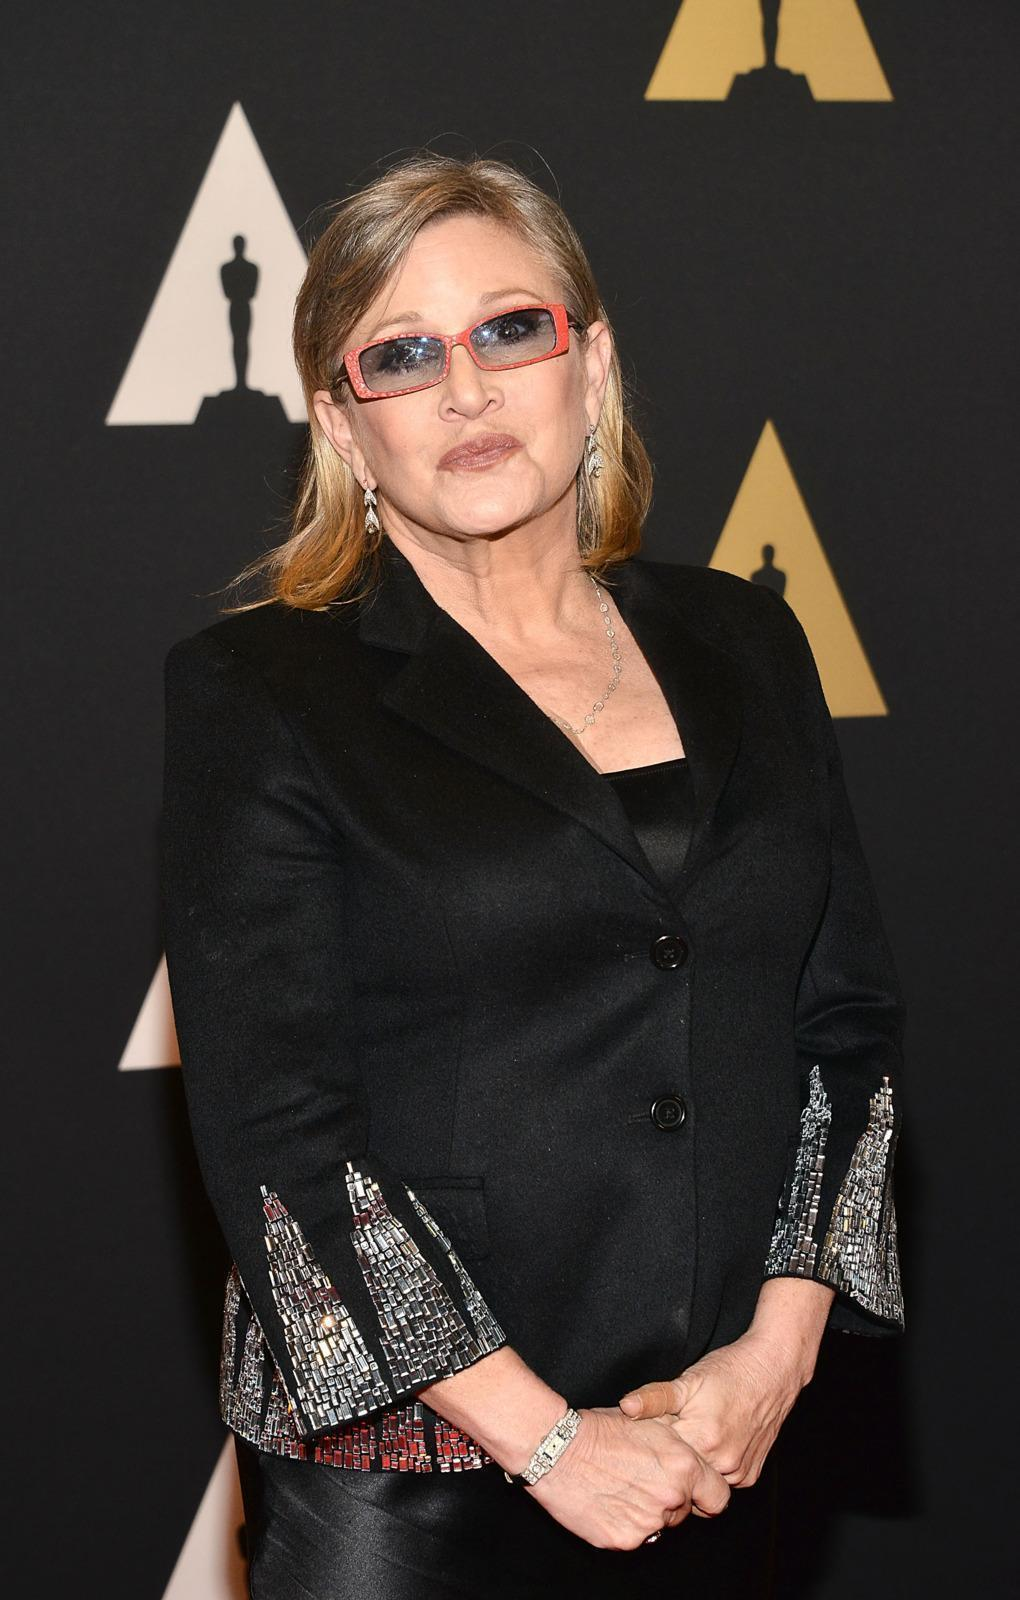 'Star Wars' Is Still Pressuring Carrie Fisher to Lose Weight